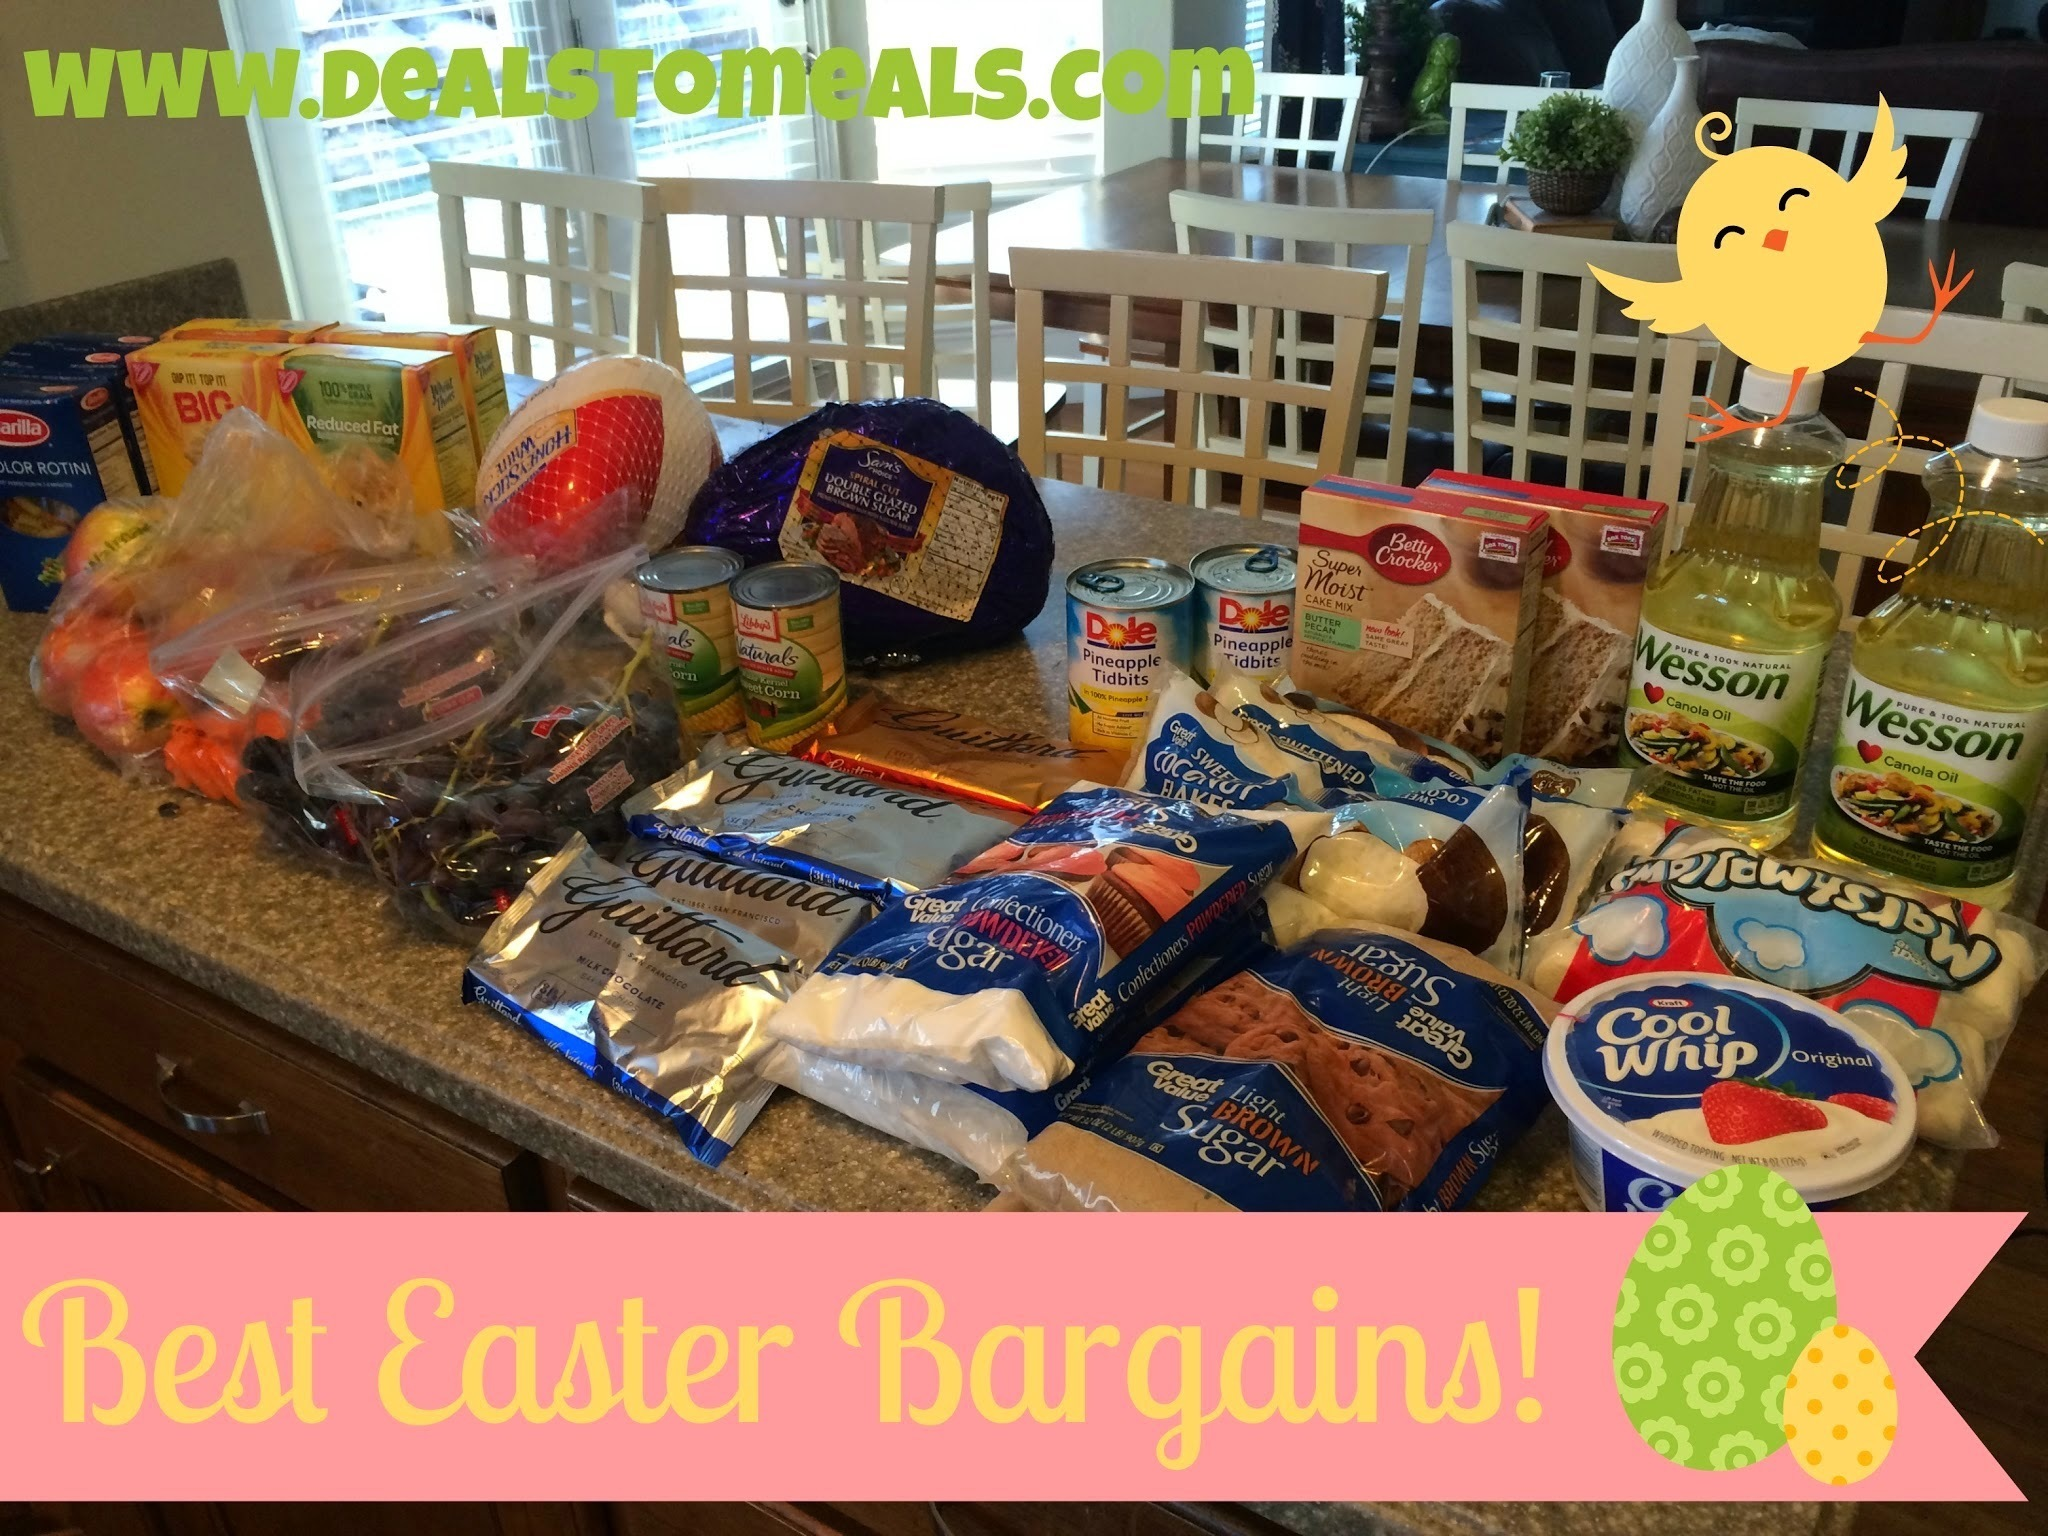 Best Easter Grocery Bargains + Your Entire Meal for under $50!